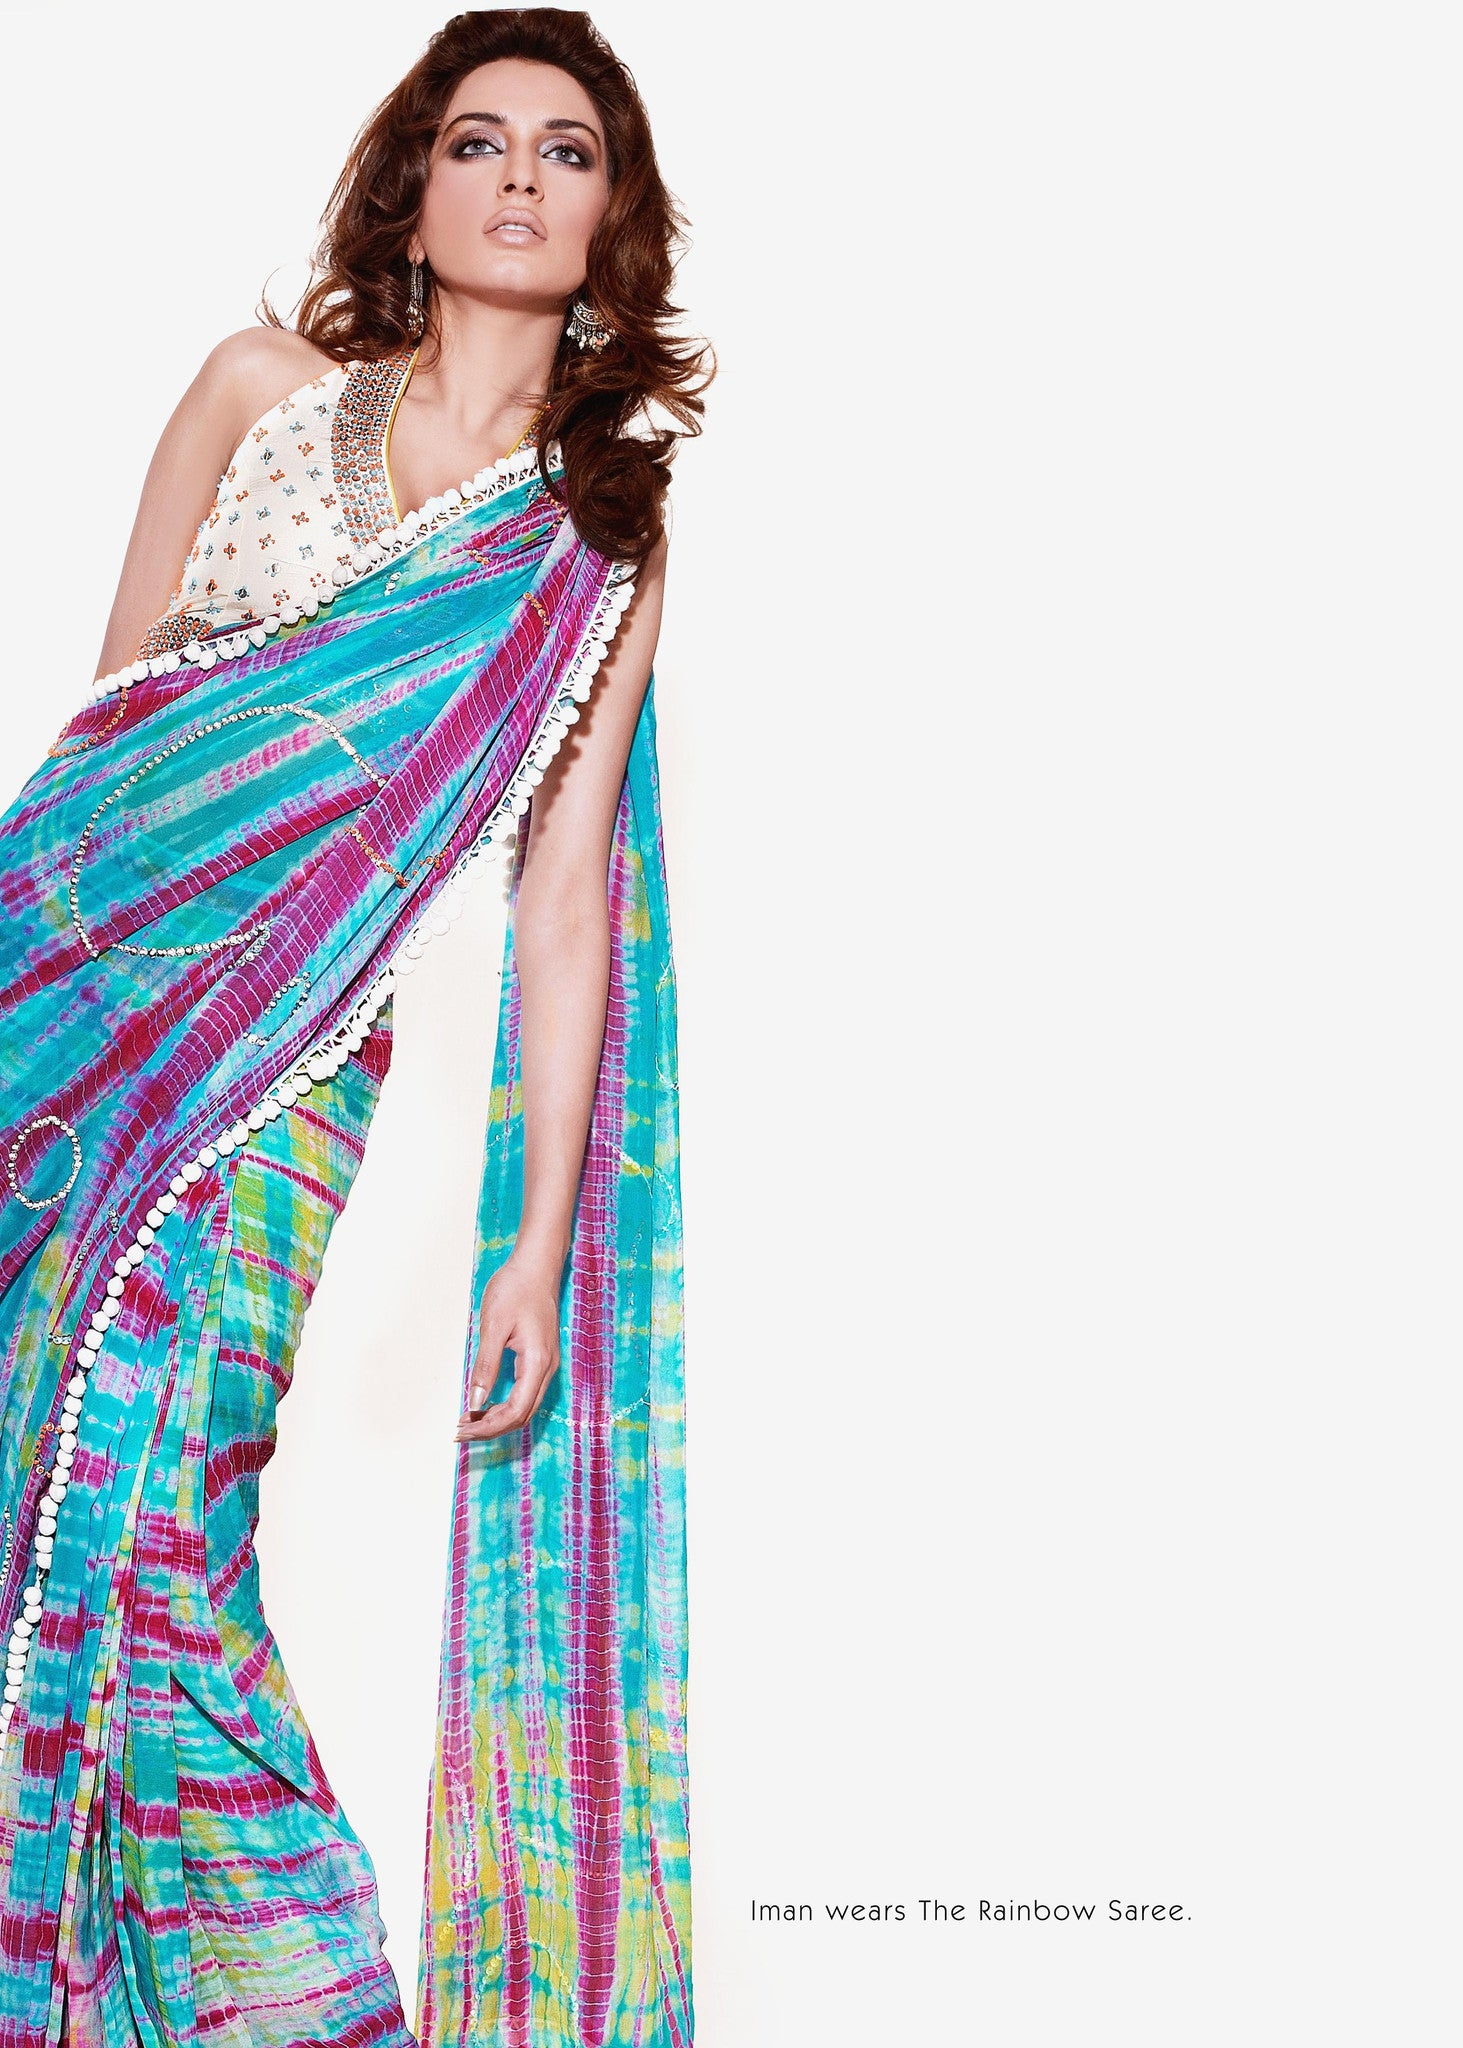 Rainbow Saree